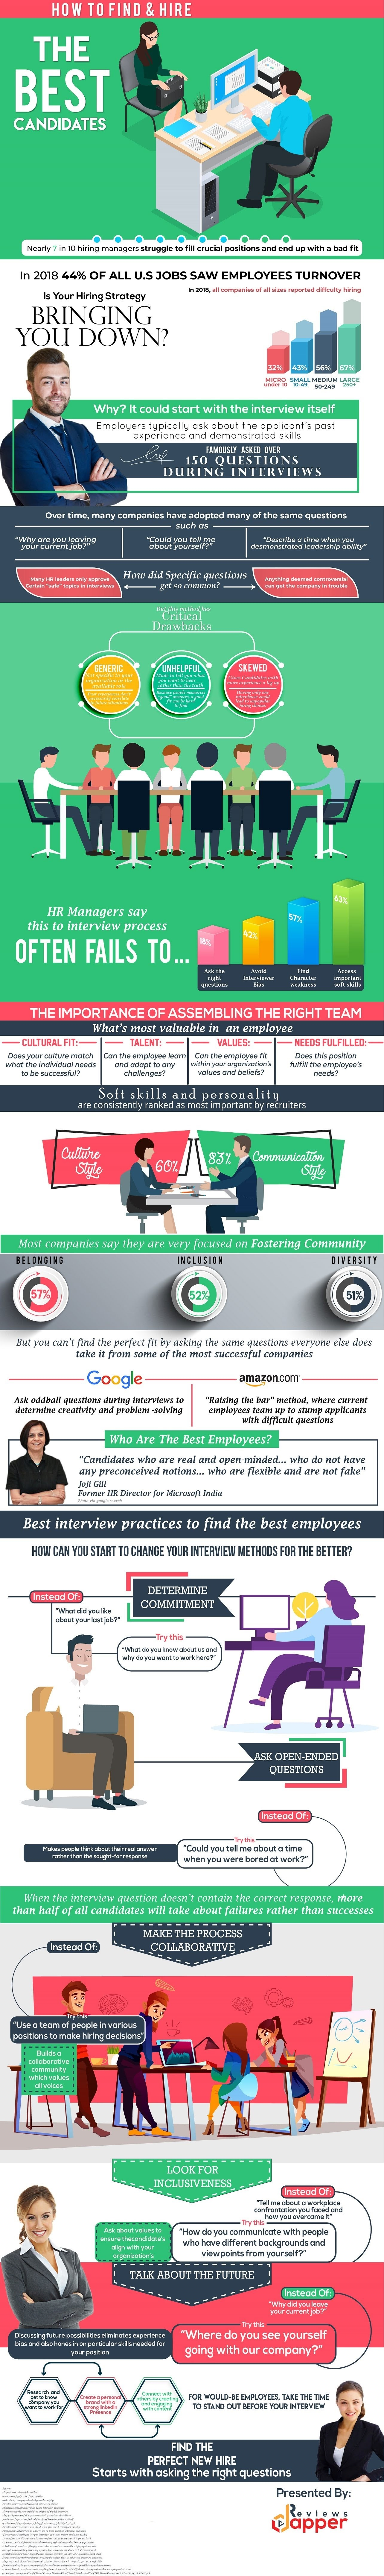 How to find and Hire the Best Candidate – Perfect Interview Process #infographic